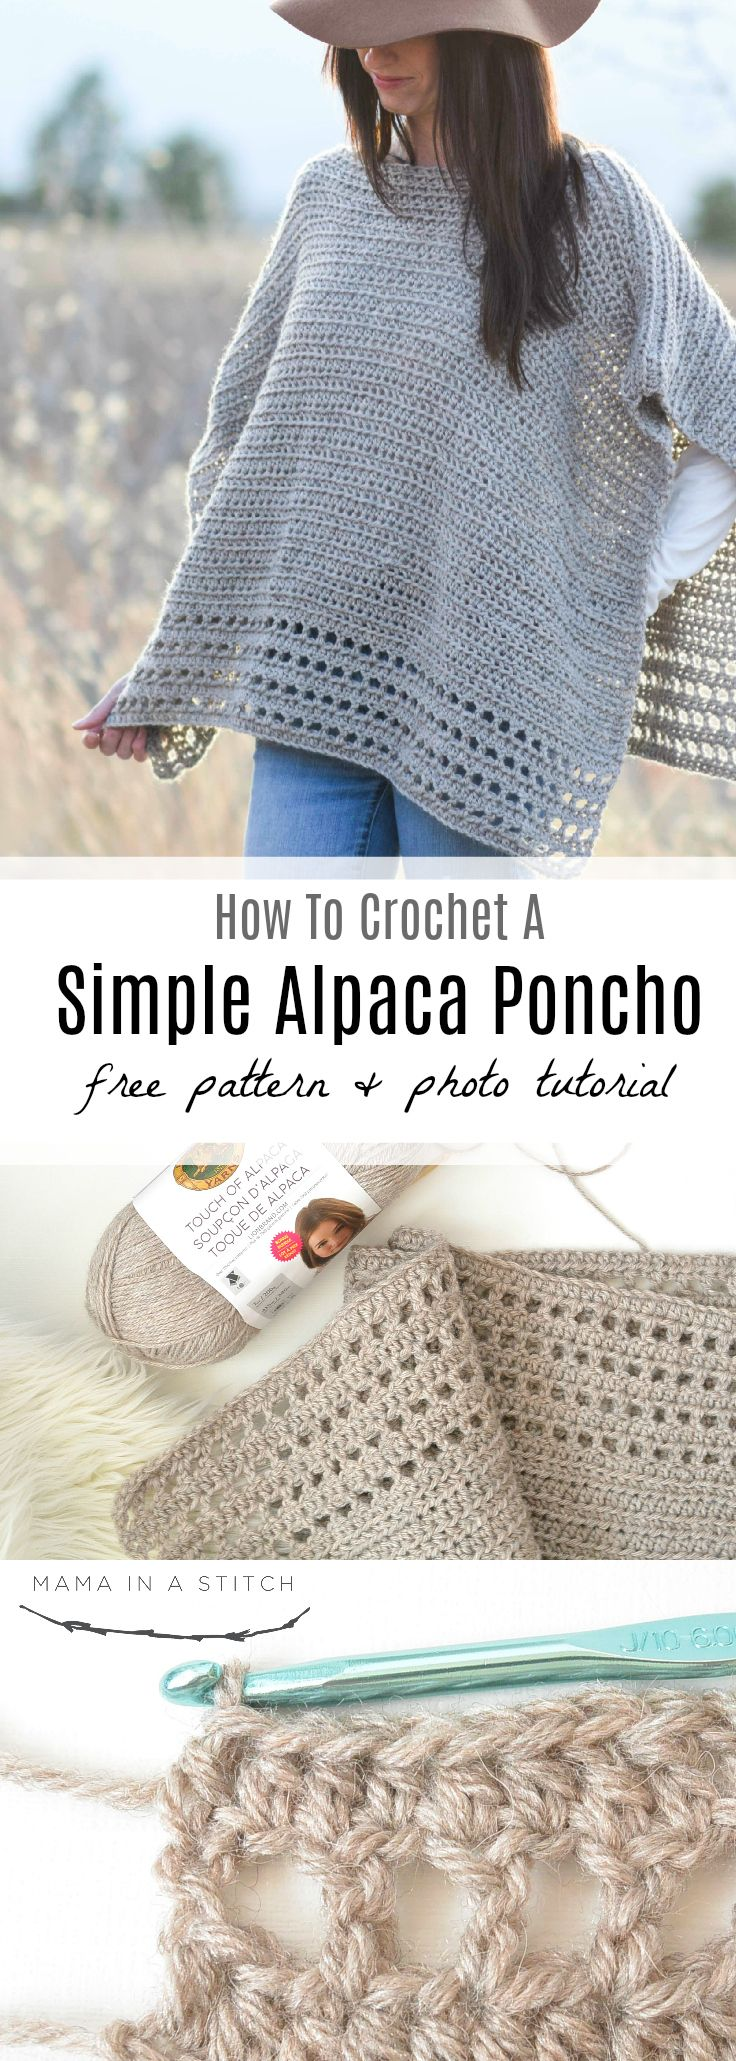 Light Alpaca Poncho Crochet Pattern via @MamaInAStitch Easy crochet pattern with a picture tutorial! #crafts #diy #crochetpattern #knittingpattern #poncho #style